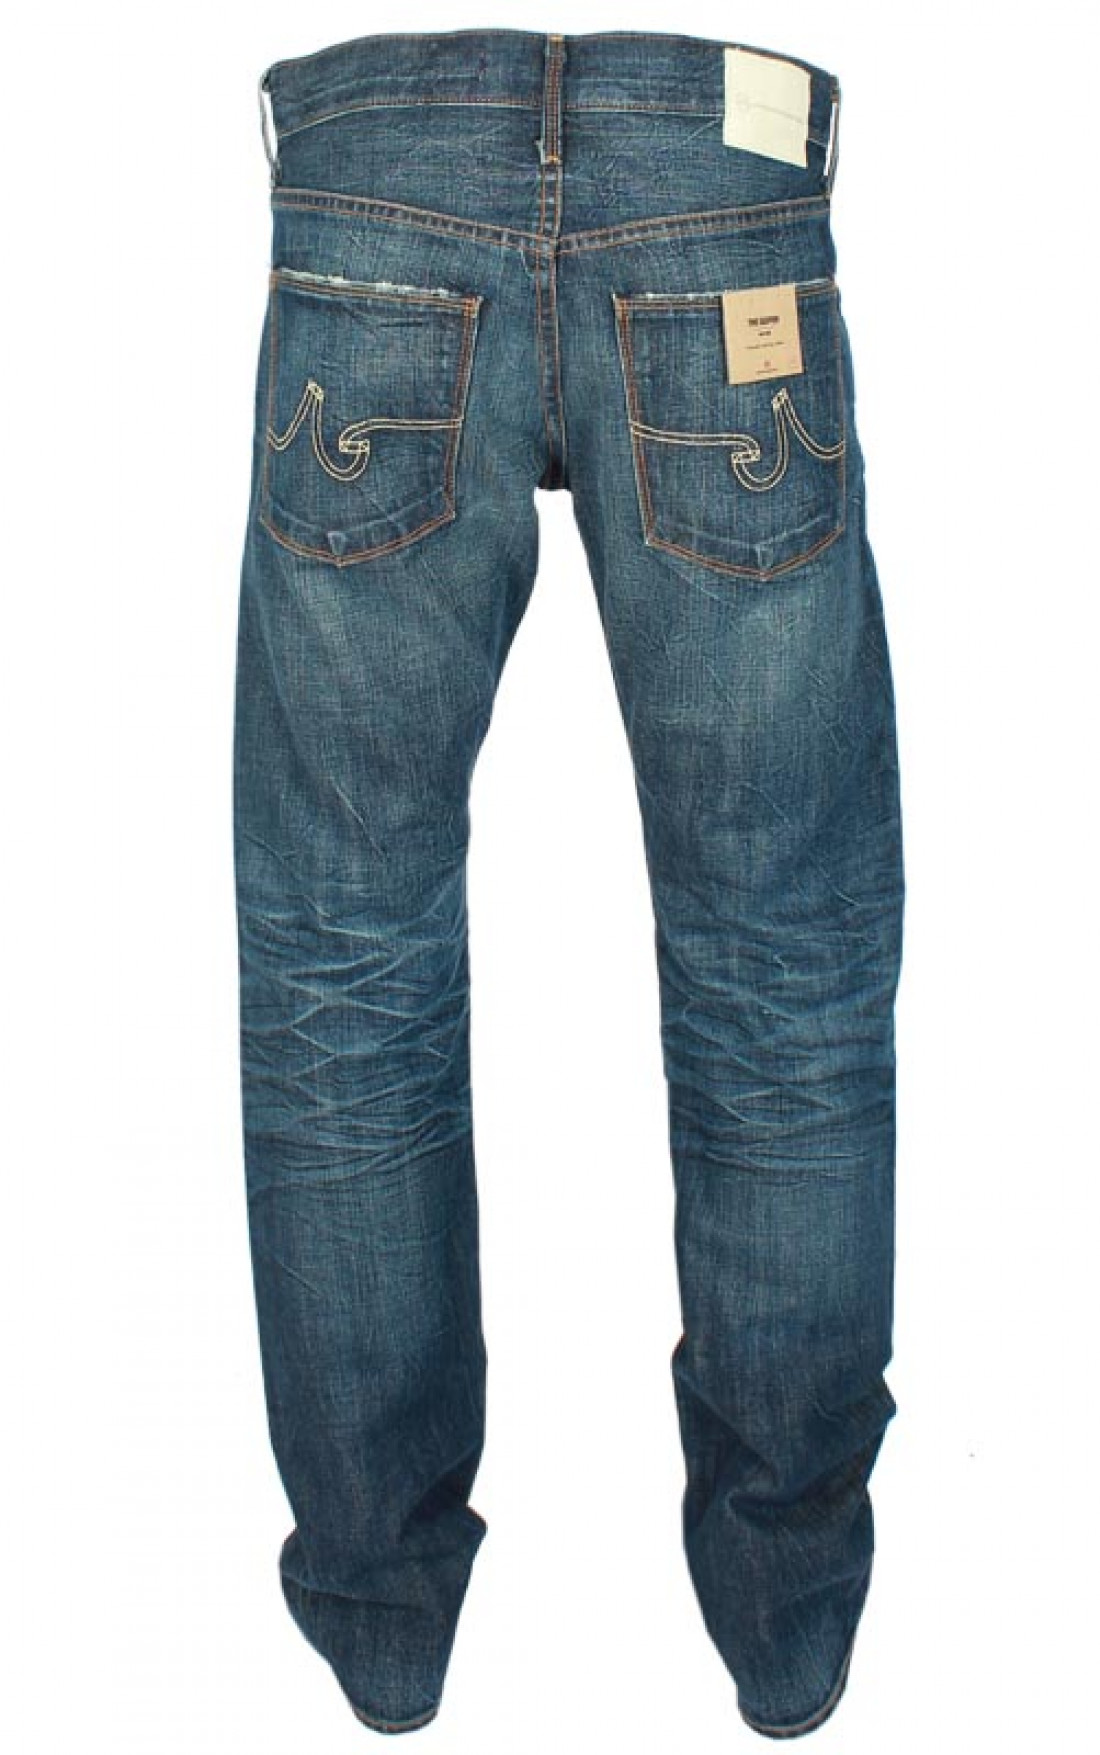 Adriano Goldschmied Mens Jeans